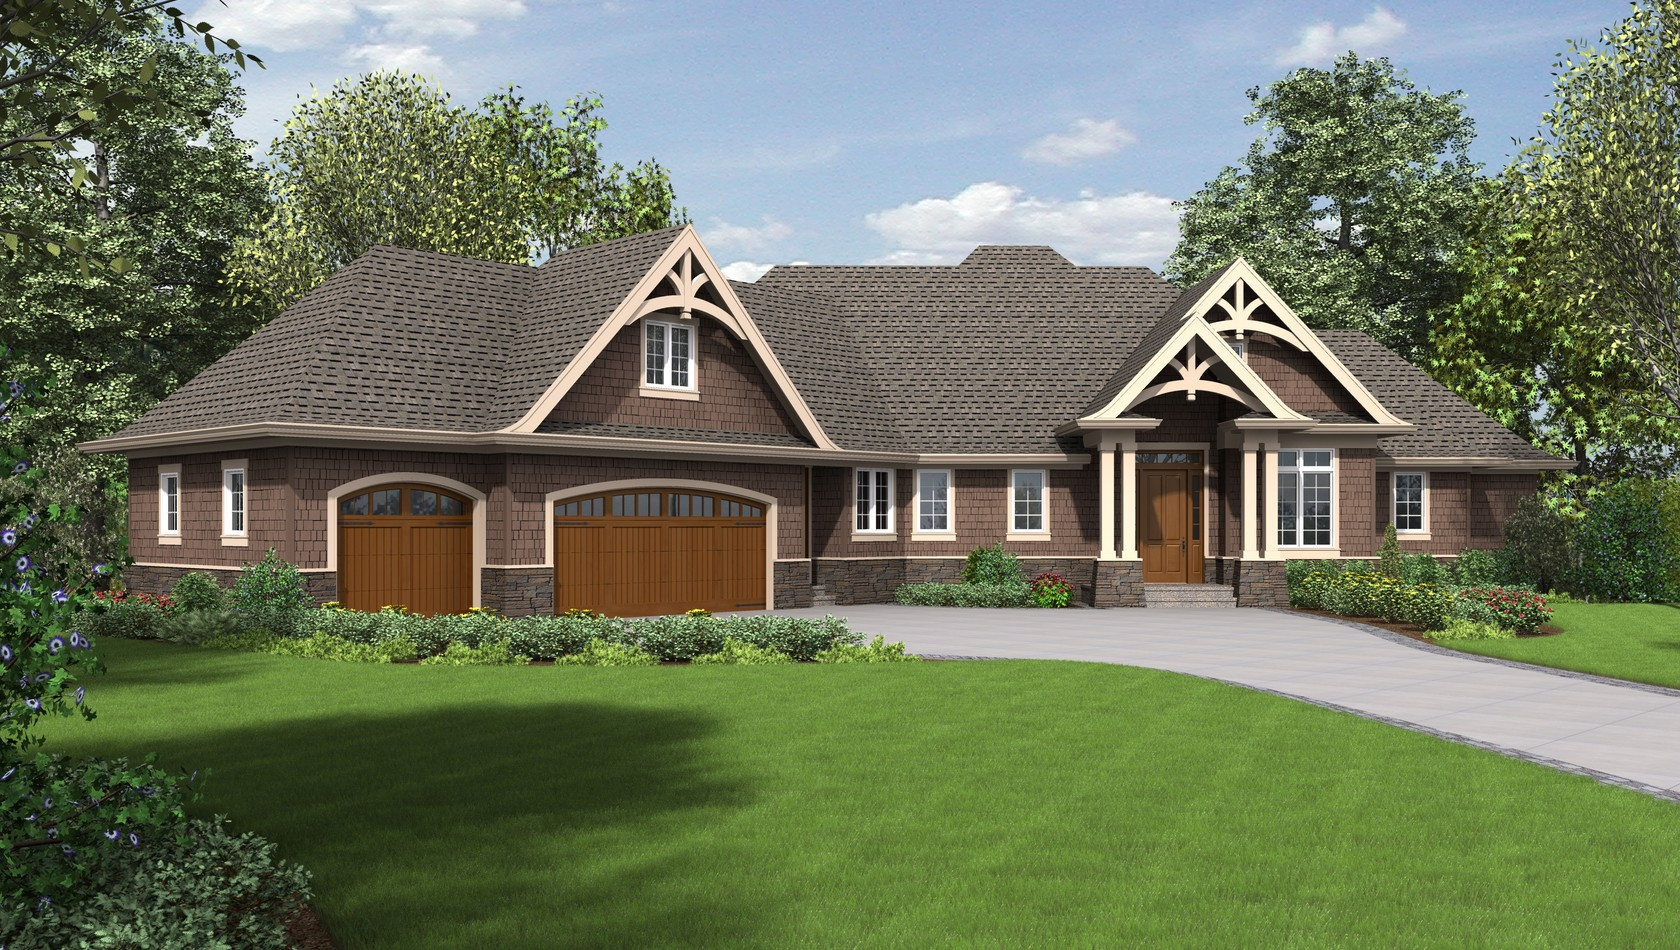 Main image for house plan 1340: The Copperfield